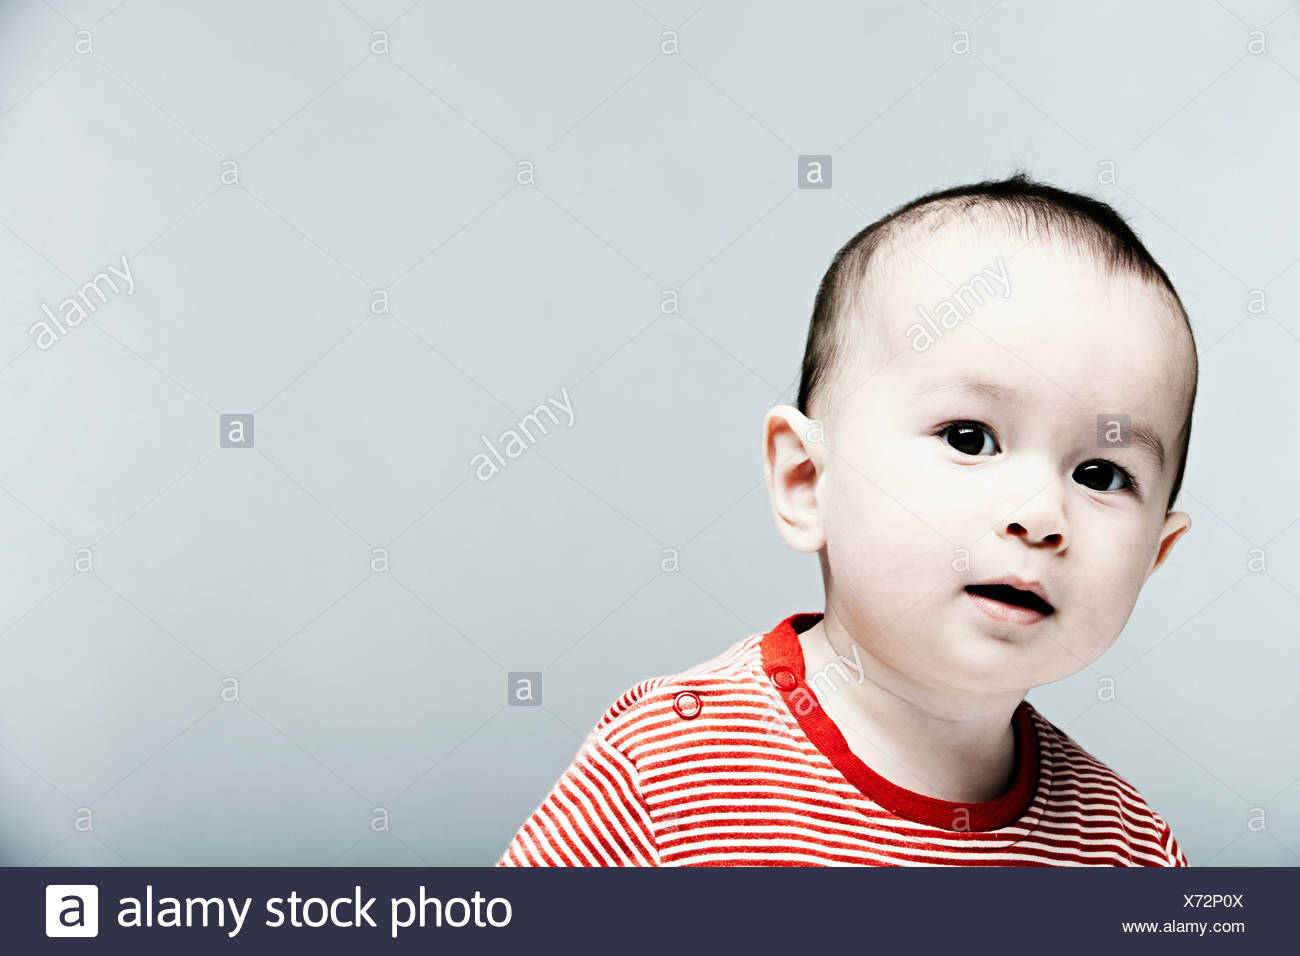 Portrait of baby boy wearing striped top looking at camera - Stock Image